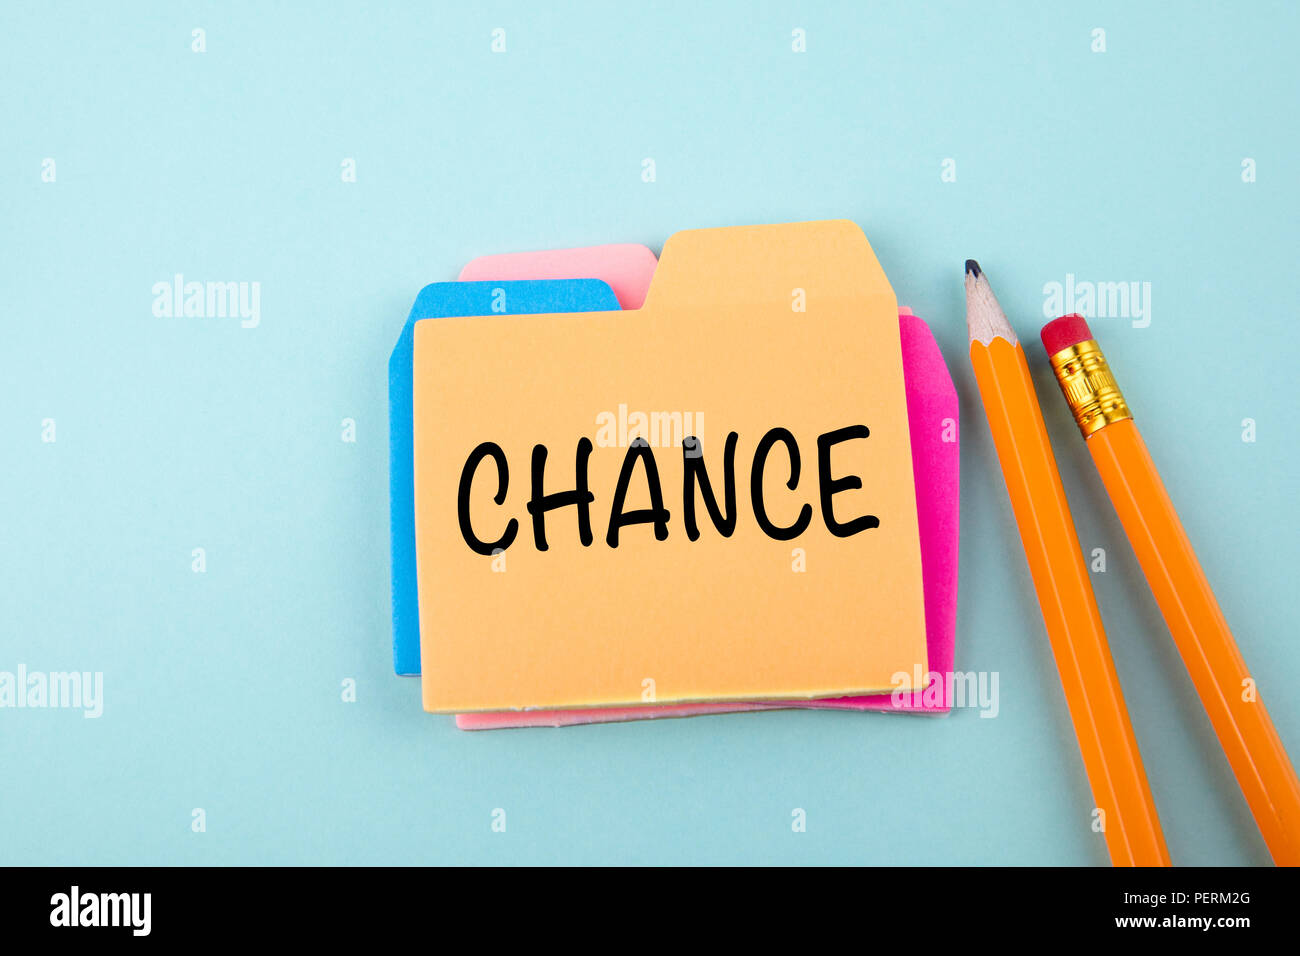 Chance, Business Concept - Stock Image